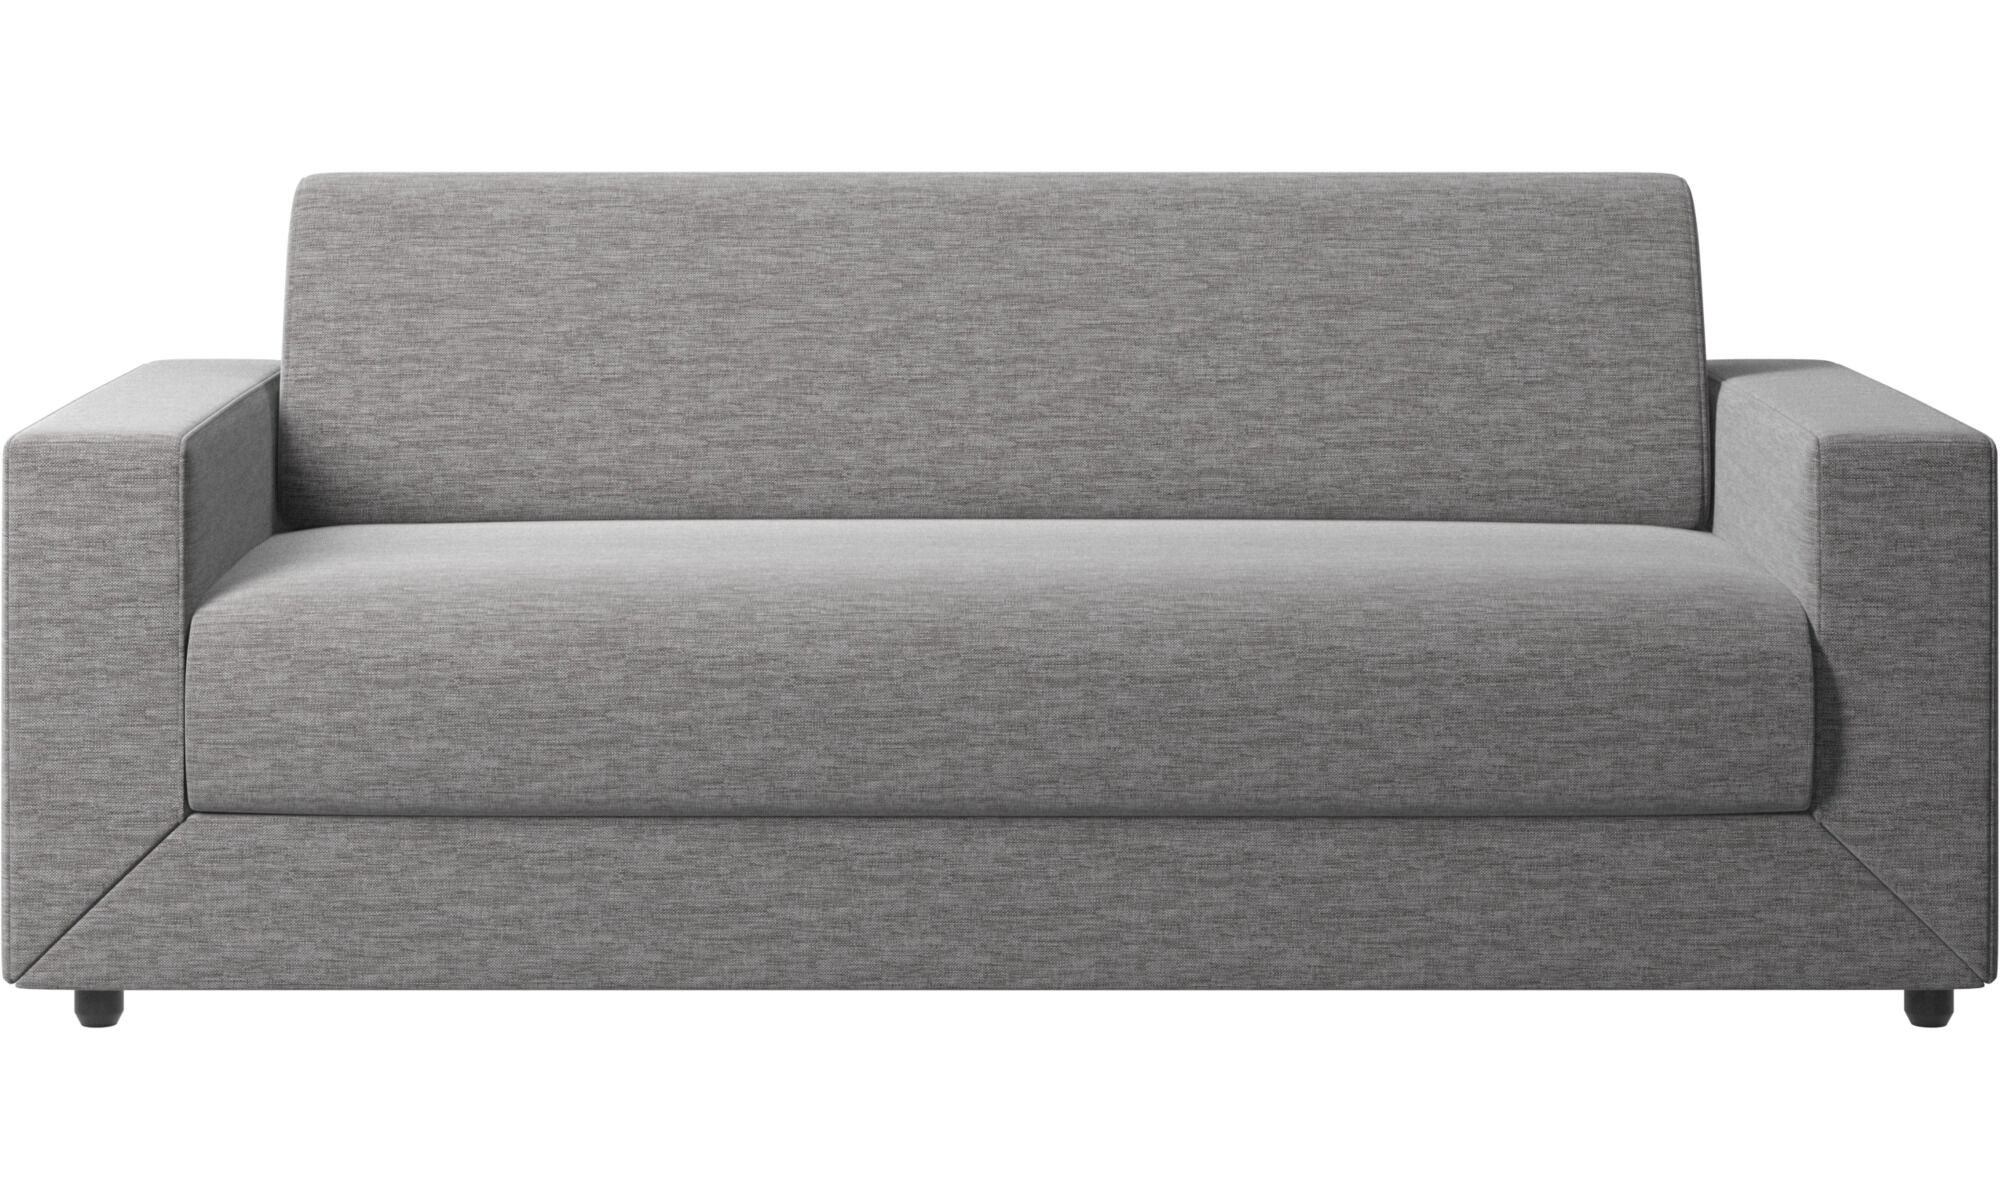 Sofa Beds   Stockholm Sofa Bed   Gray   Fabric. Add To Favorites